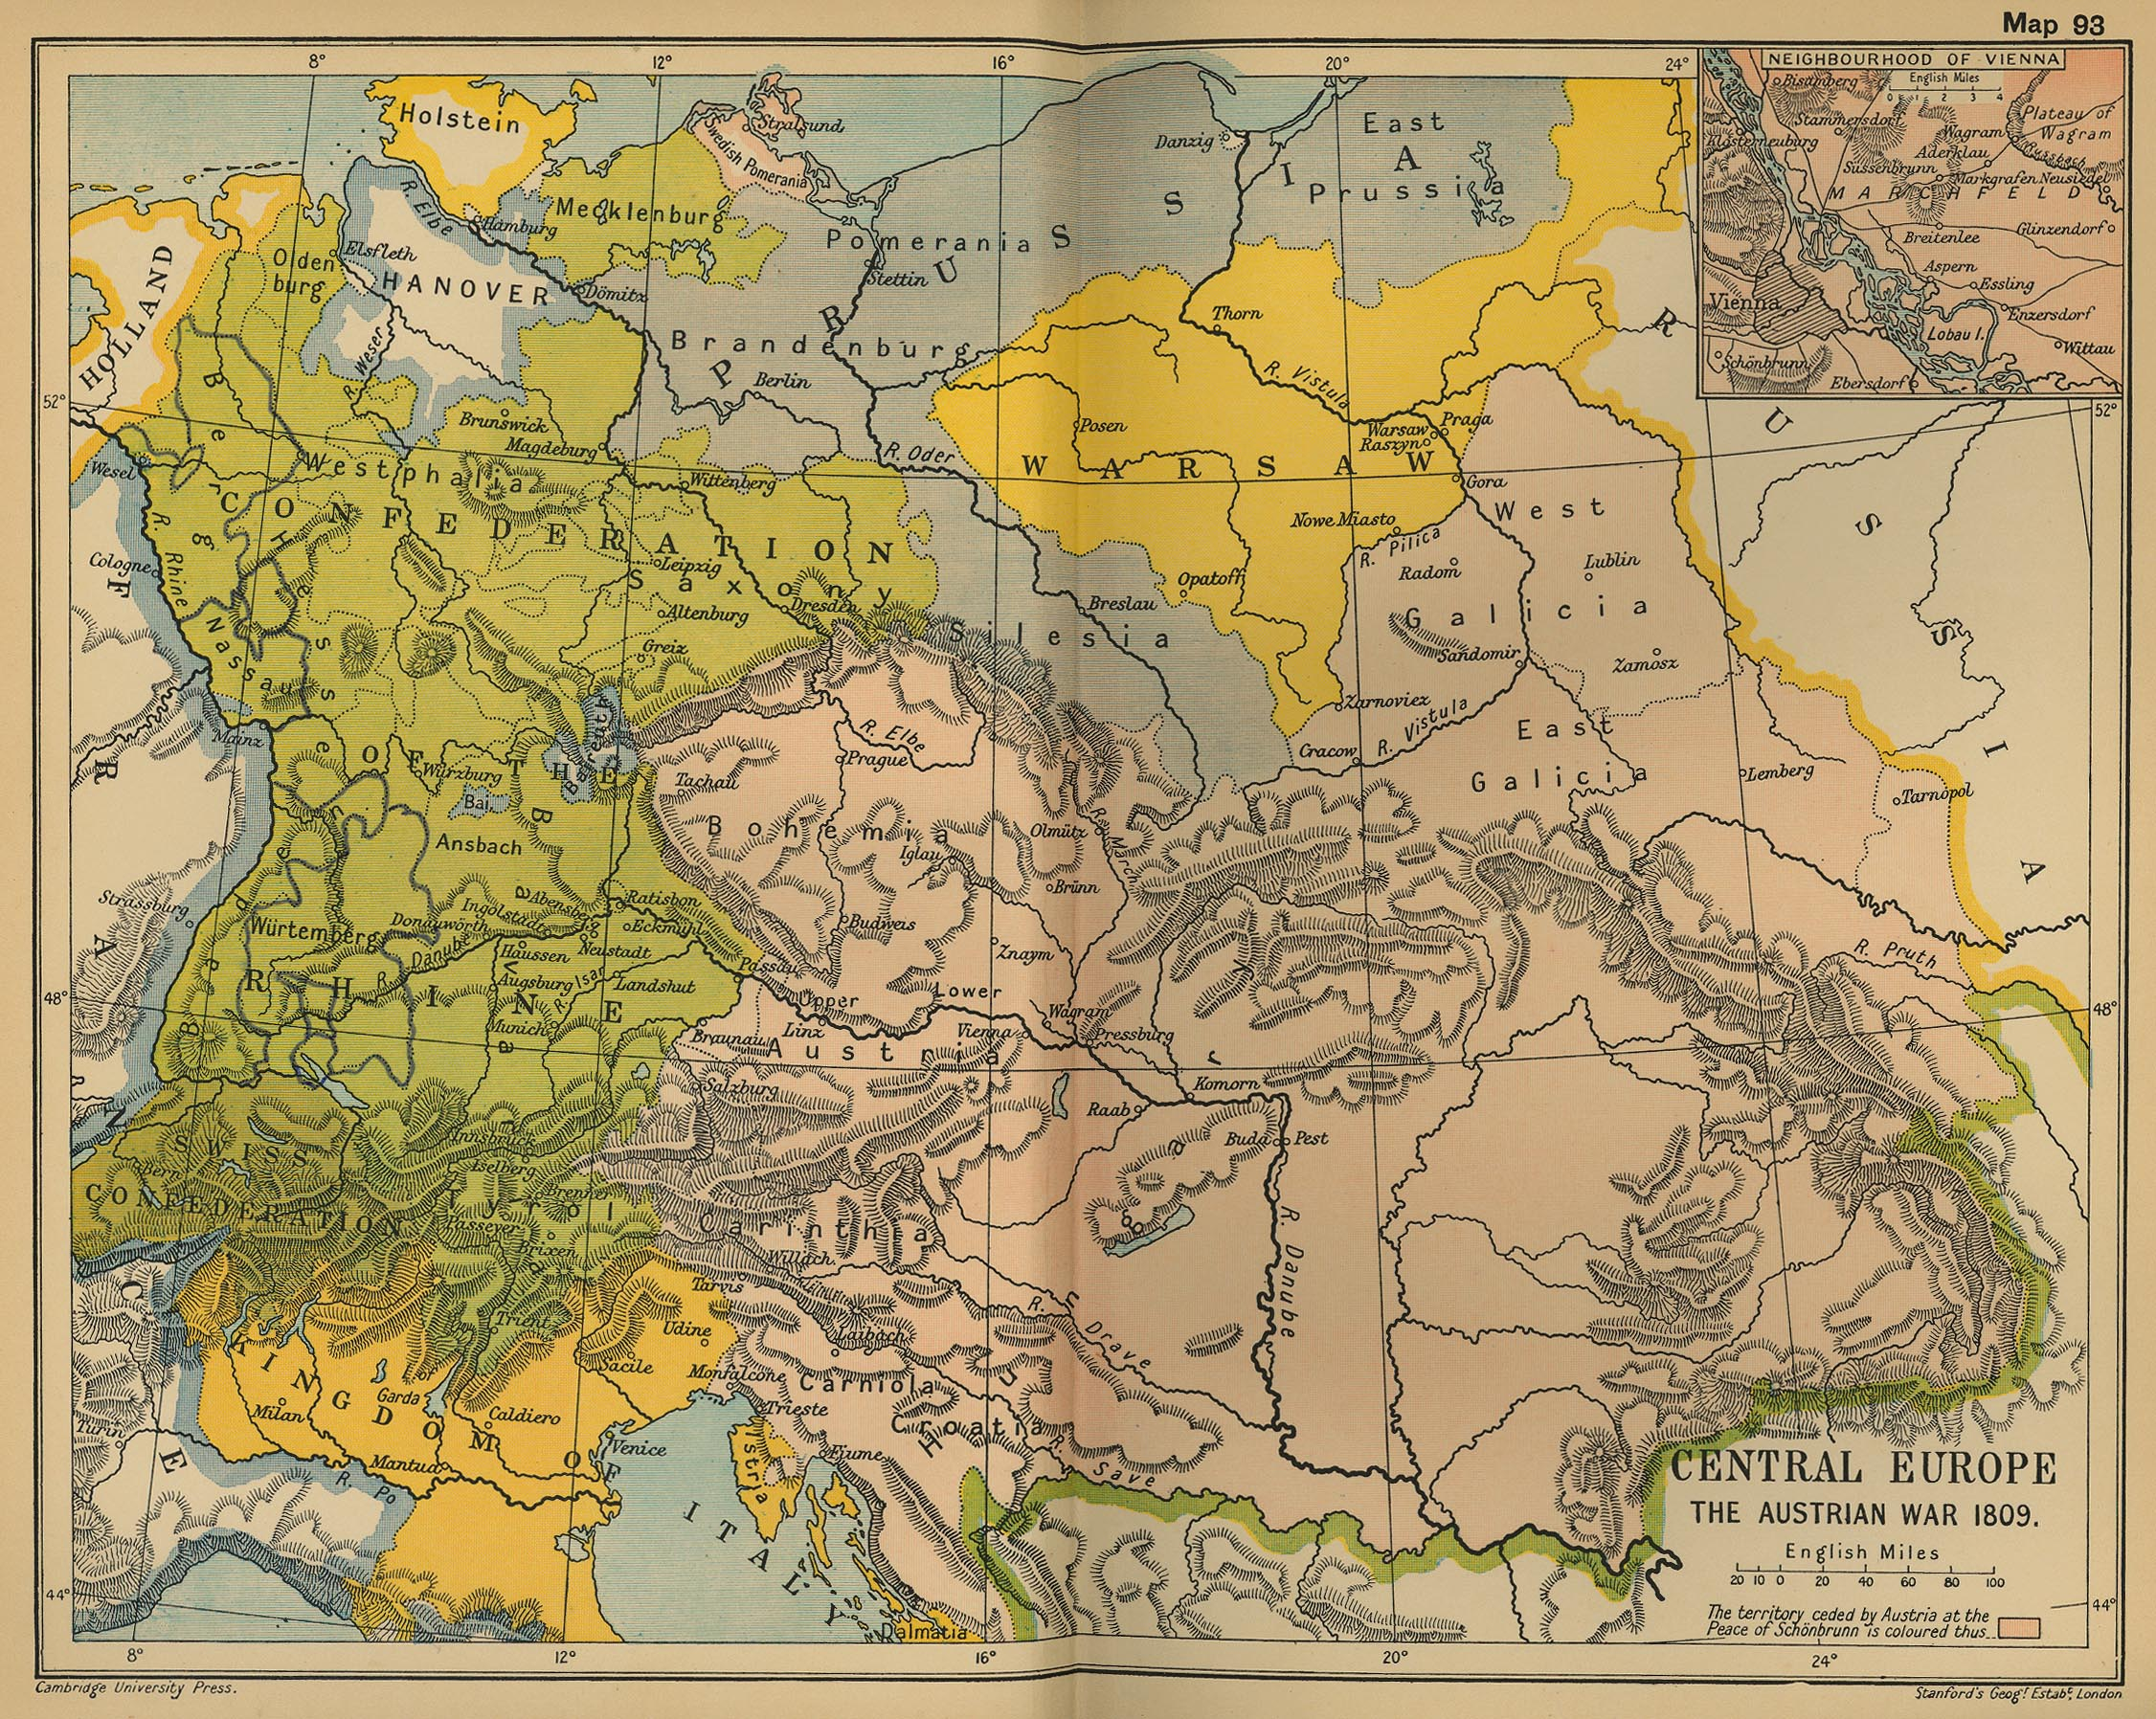 Map of Central Europe 1809: The Austrian War and the Treaty of Schoenbrunn